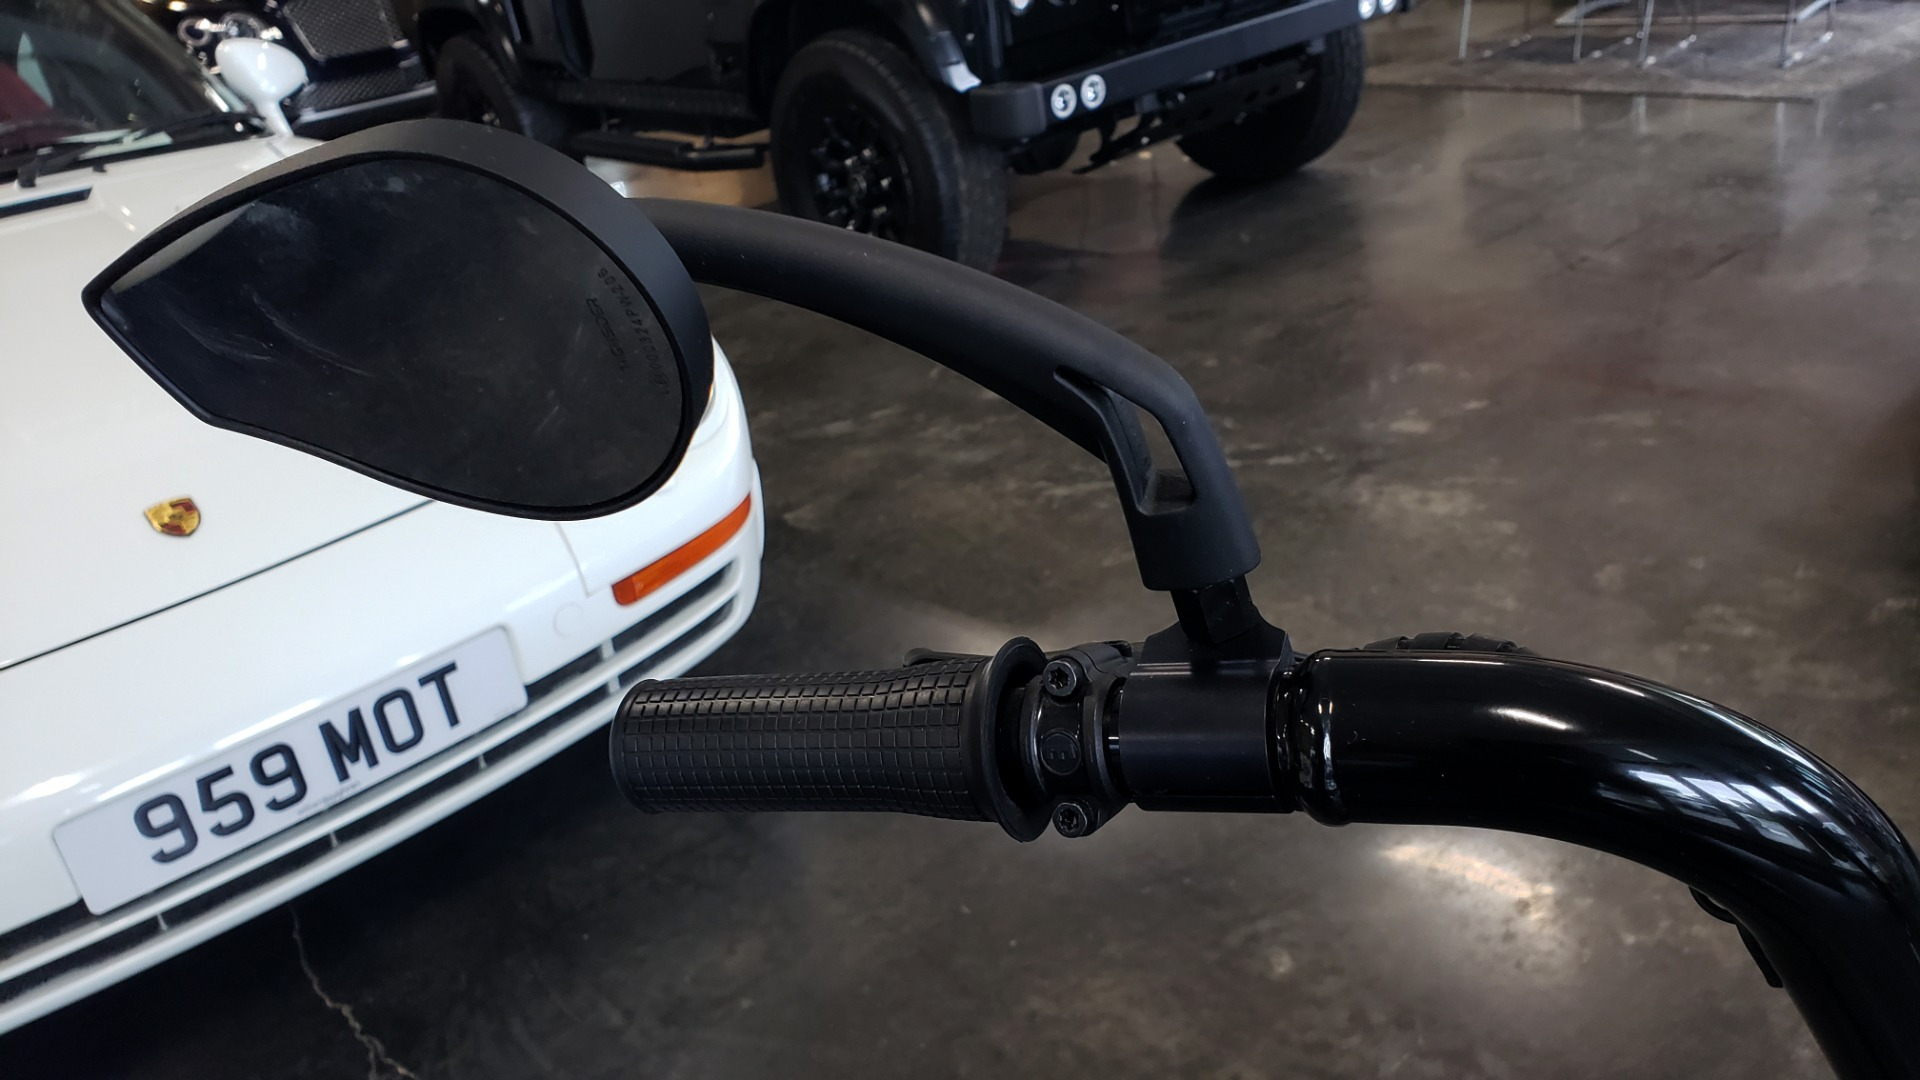 Used 2018 SCROOSER ELECTRIC SCOOTER SELF BALANCED / PITCH BLACK / 15.5 MPH / 34 MI RANGE for sale $1,699 at Formula Imports in Charlotte NC 28227 11